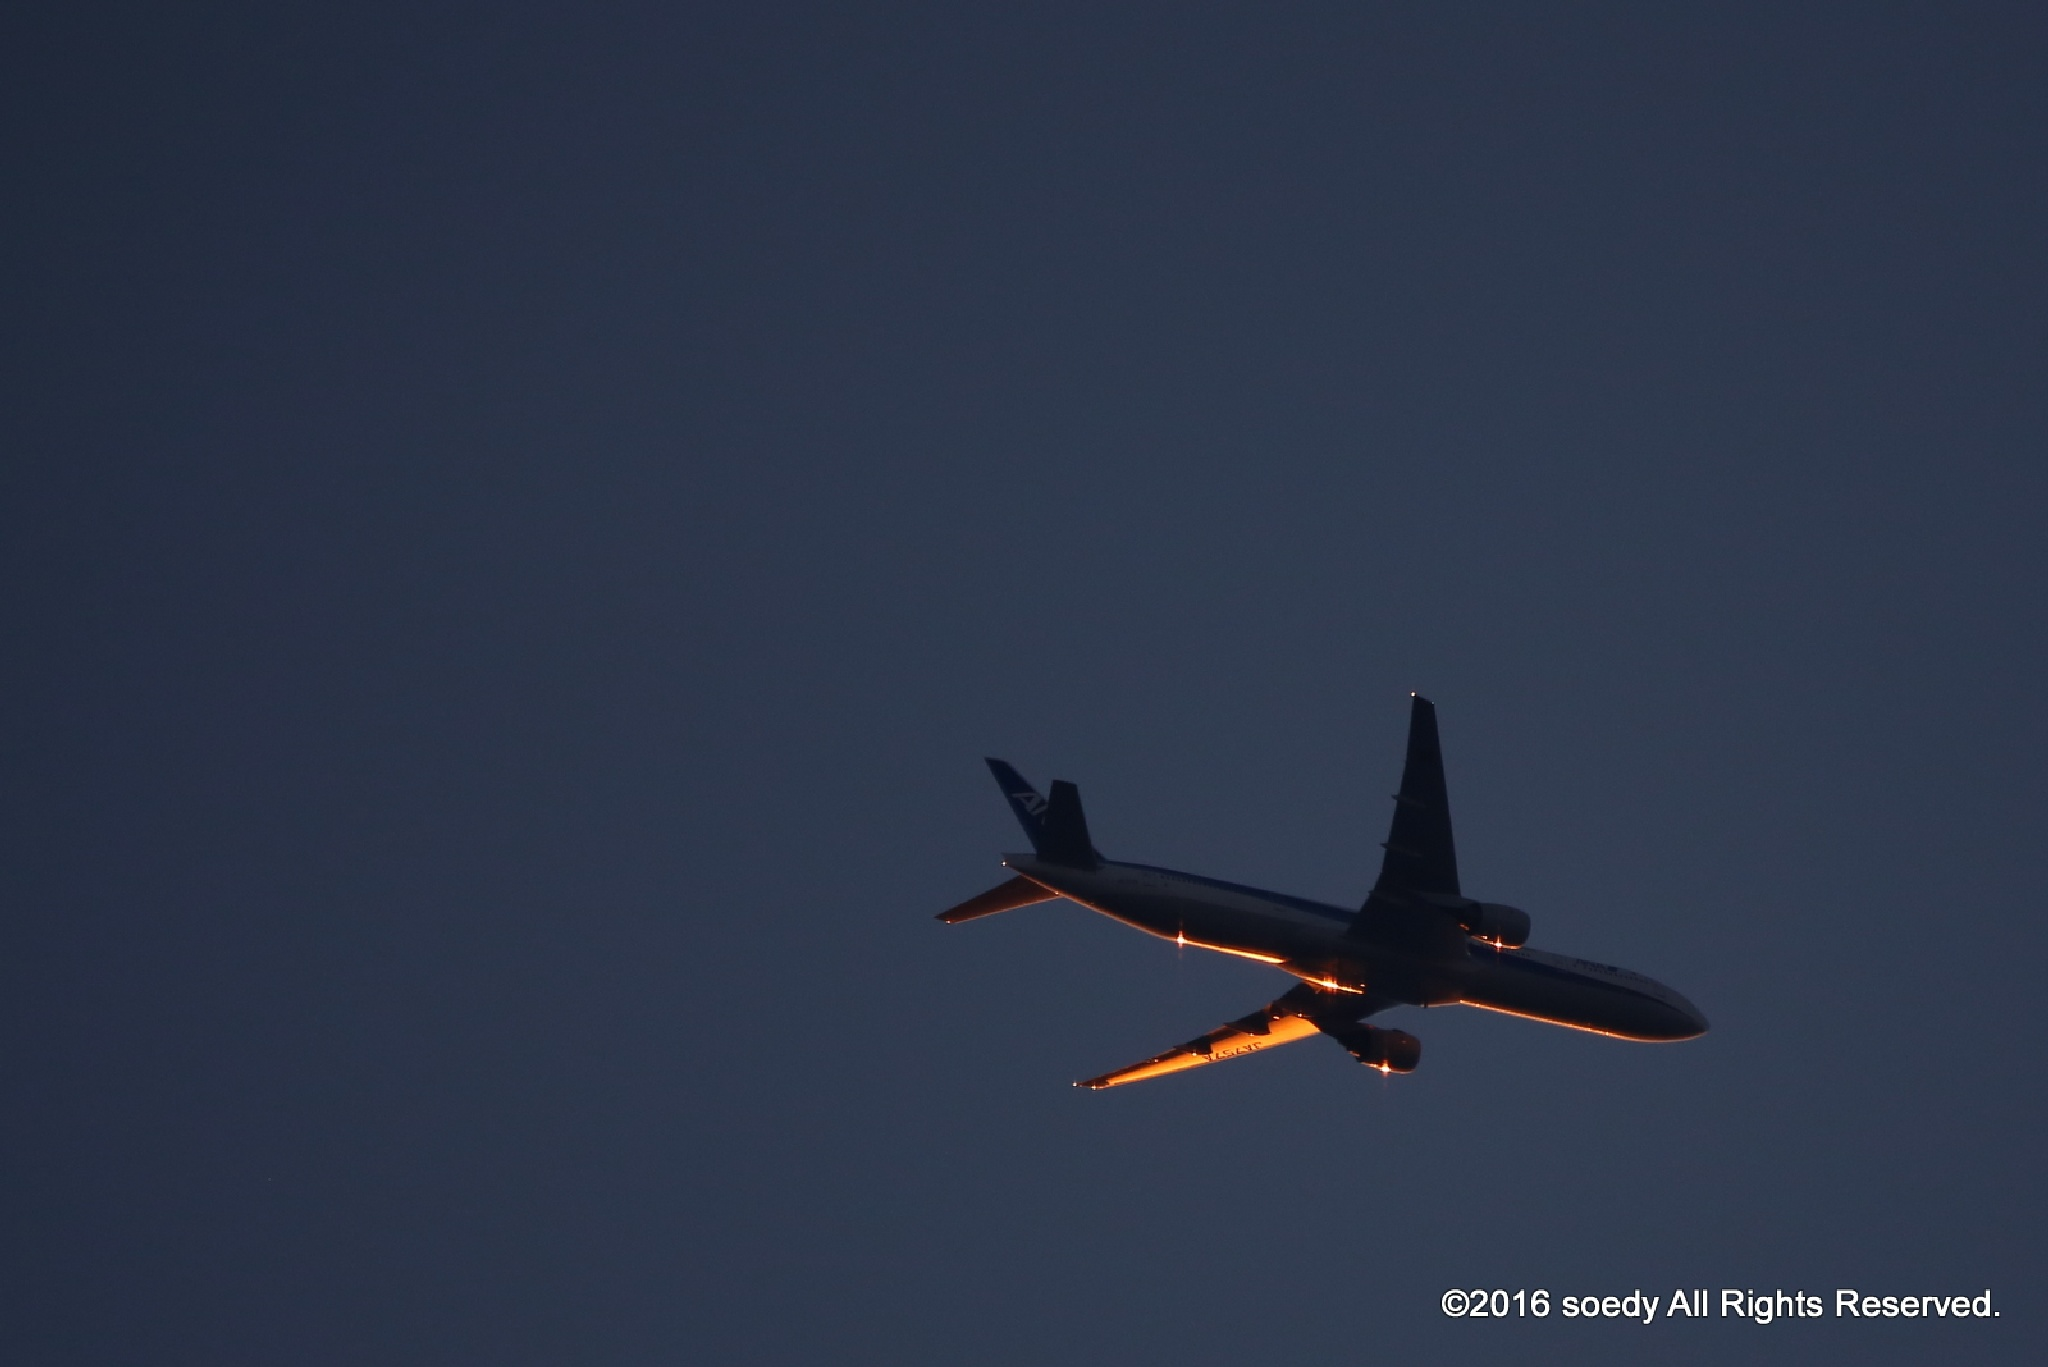 Sunset (All Nippon Airways) by soedy✞